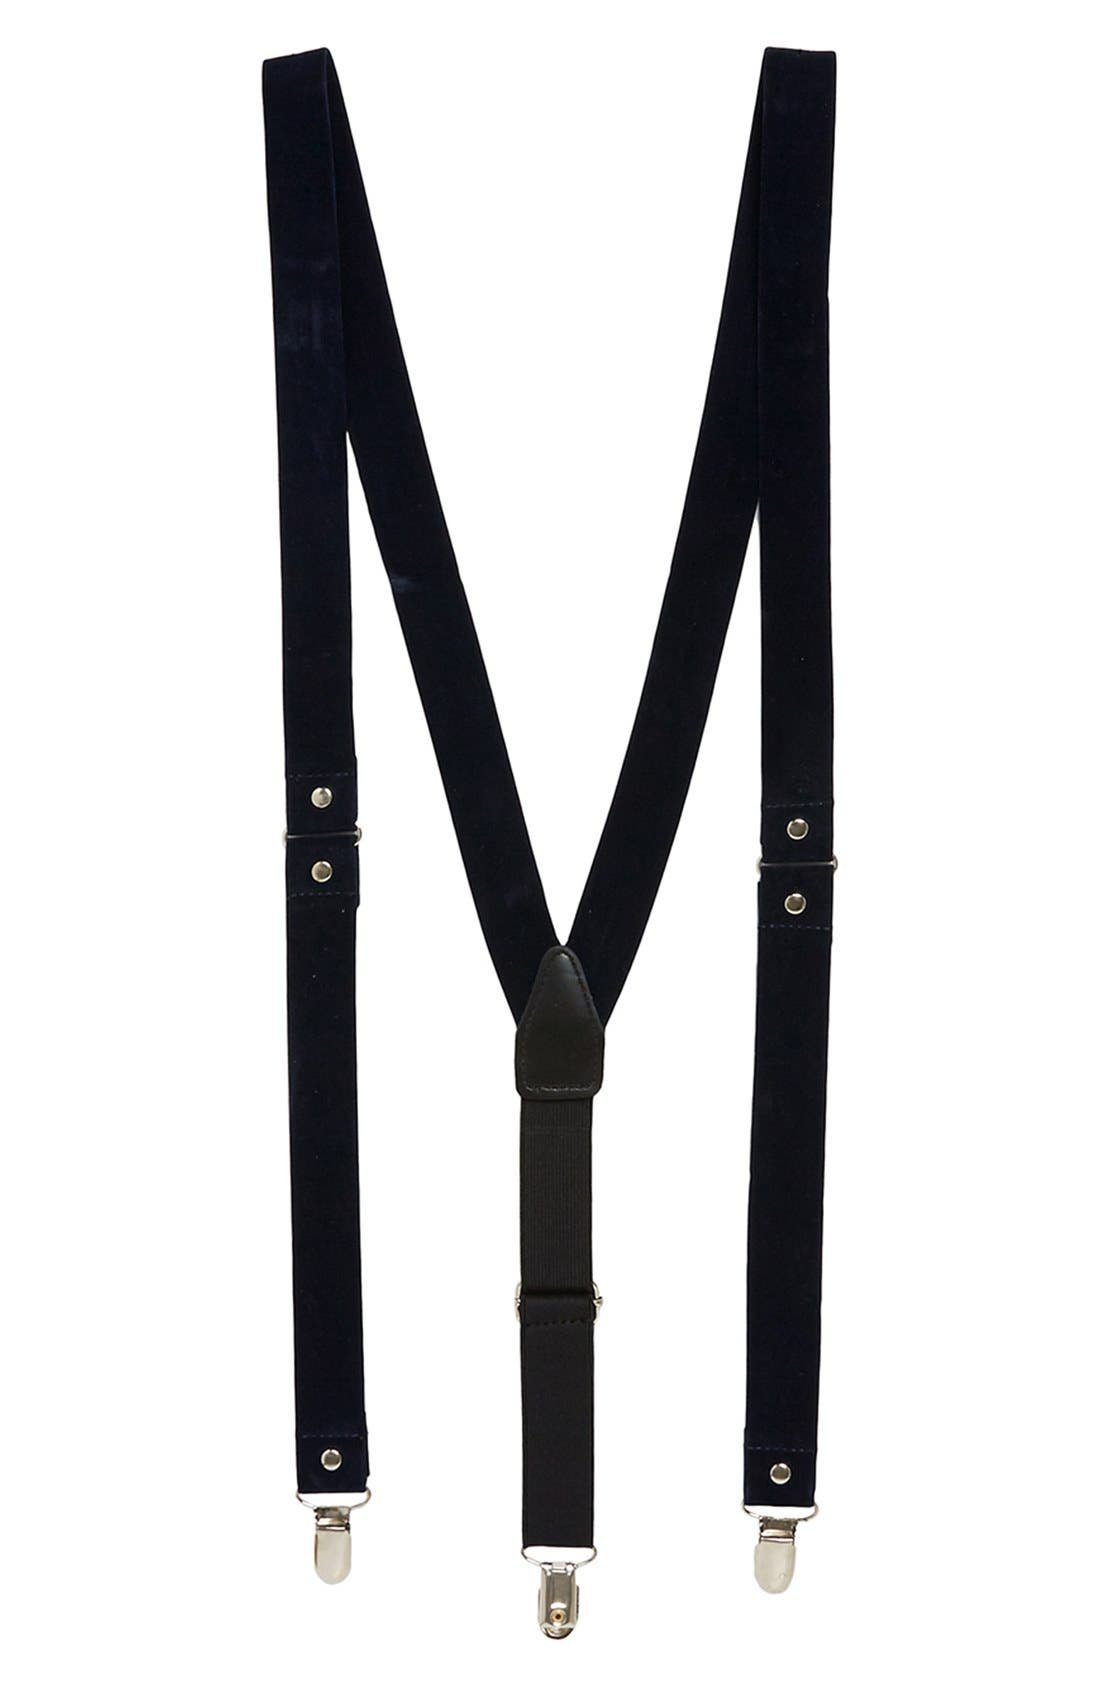 Blue Velvet Suspenders,                             Main thumbnail 1, color,                             410